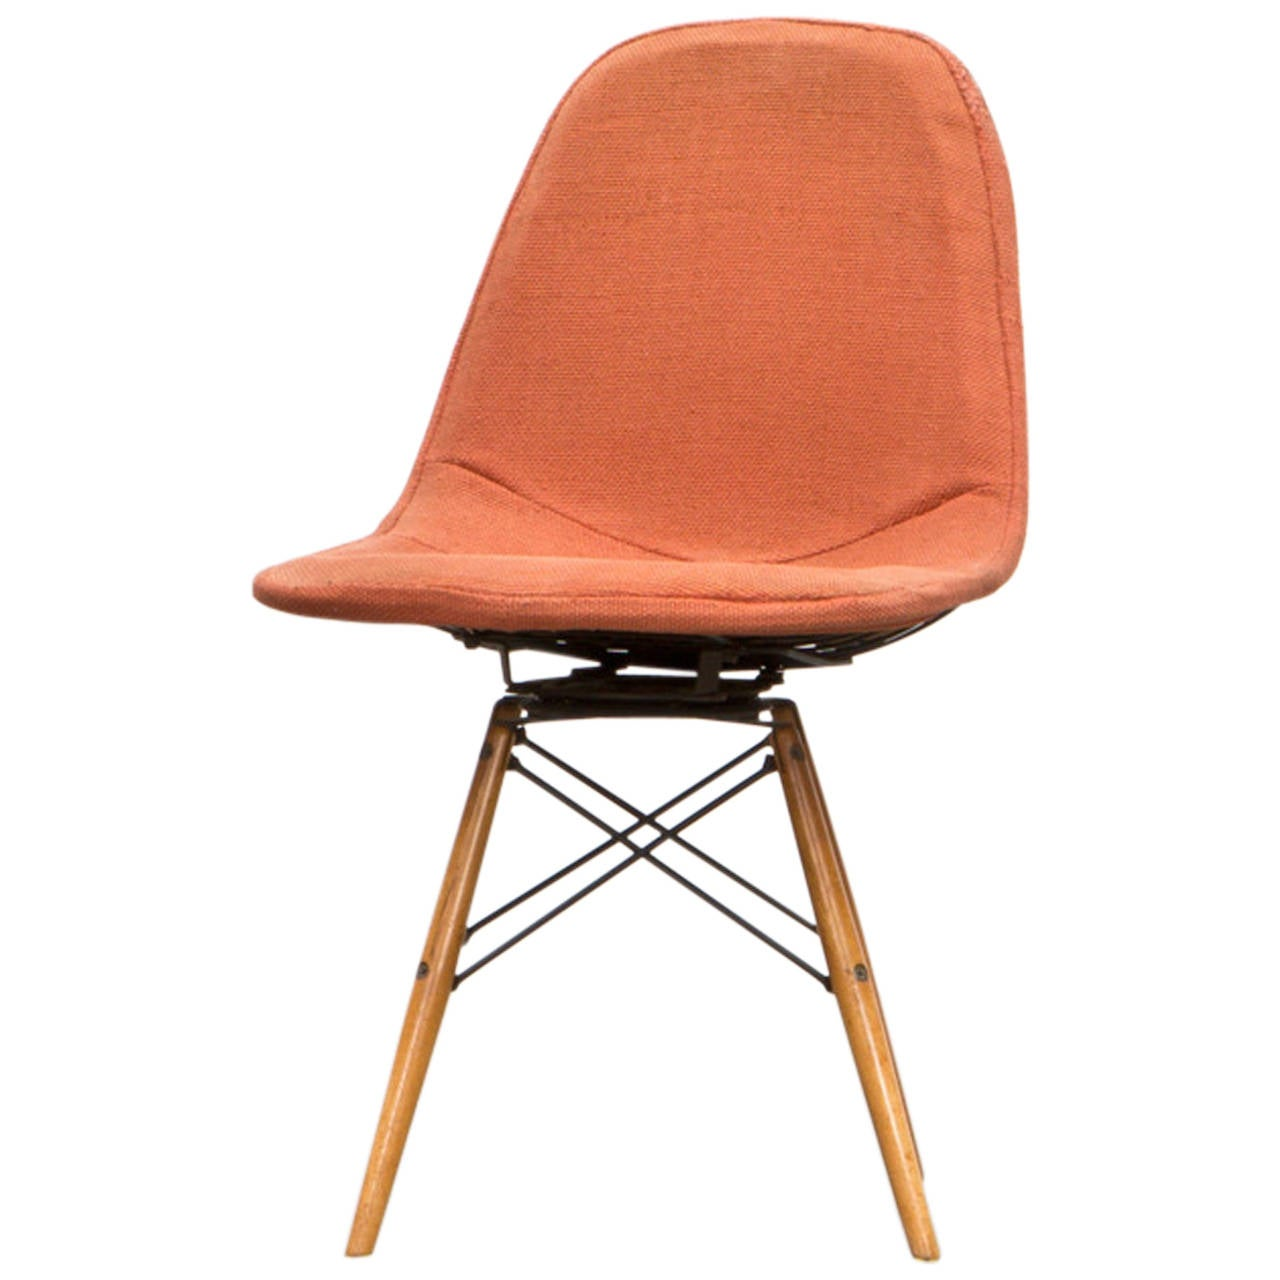 1950 S Orange Fabric Swivel Side Chair By Charles Ray Eames